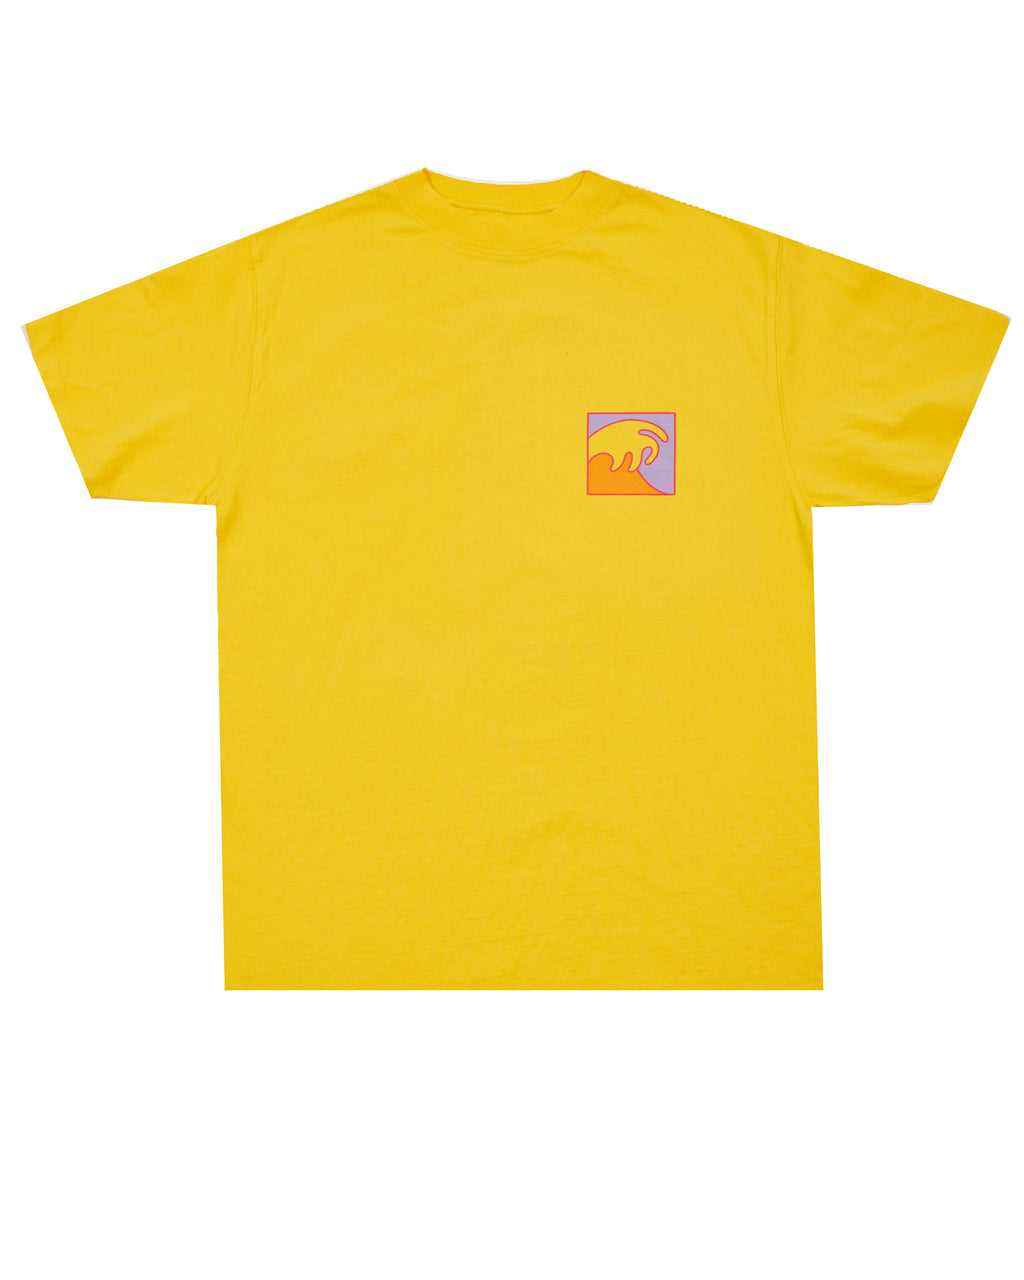 YELLOW T-SHIRT WITH MULTICOLOR WAVE